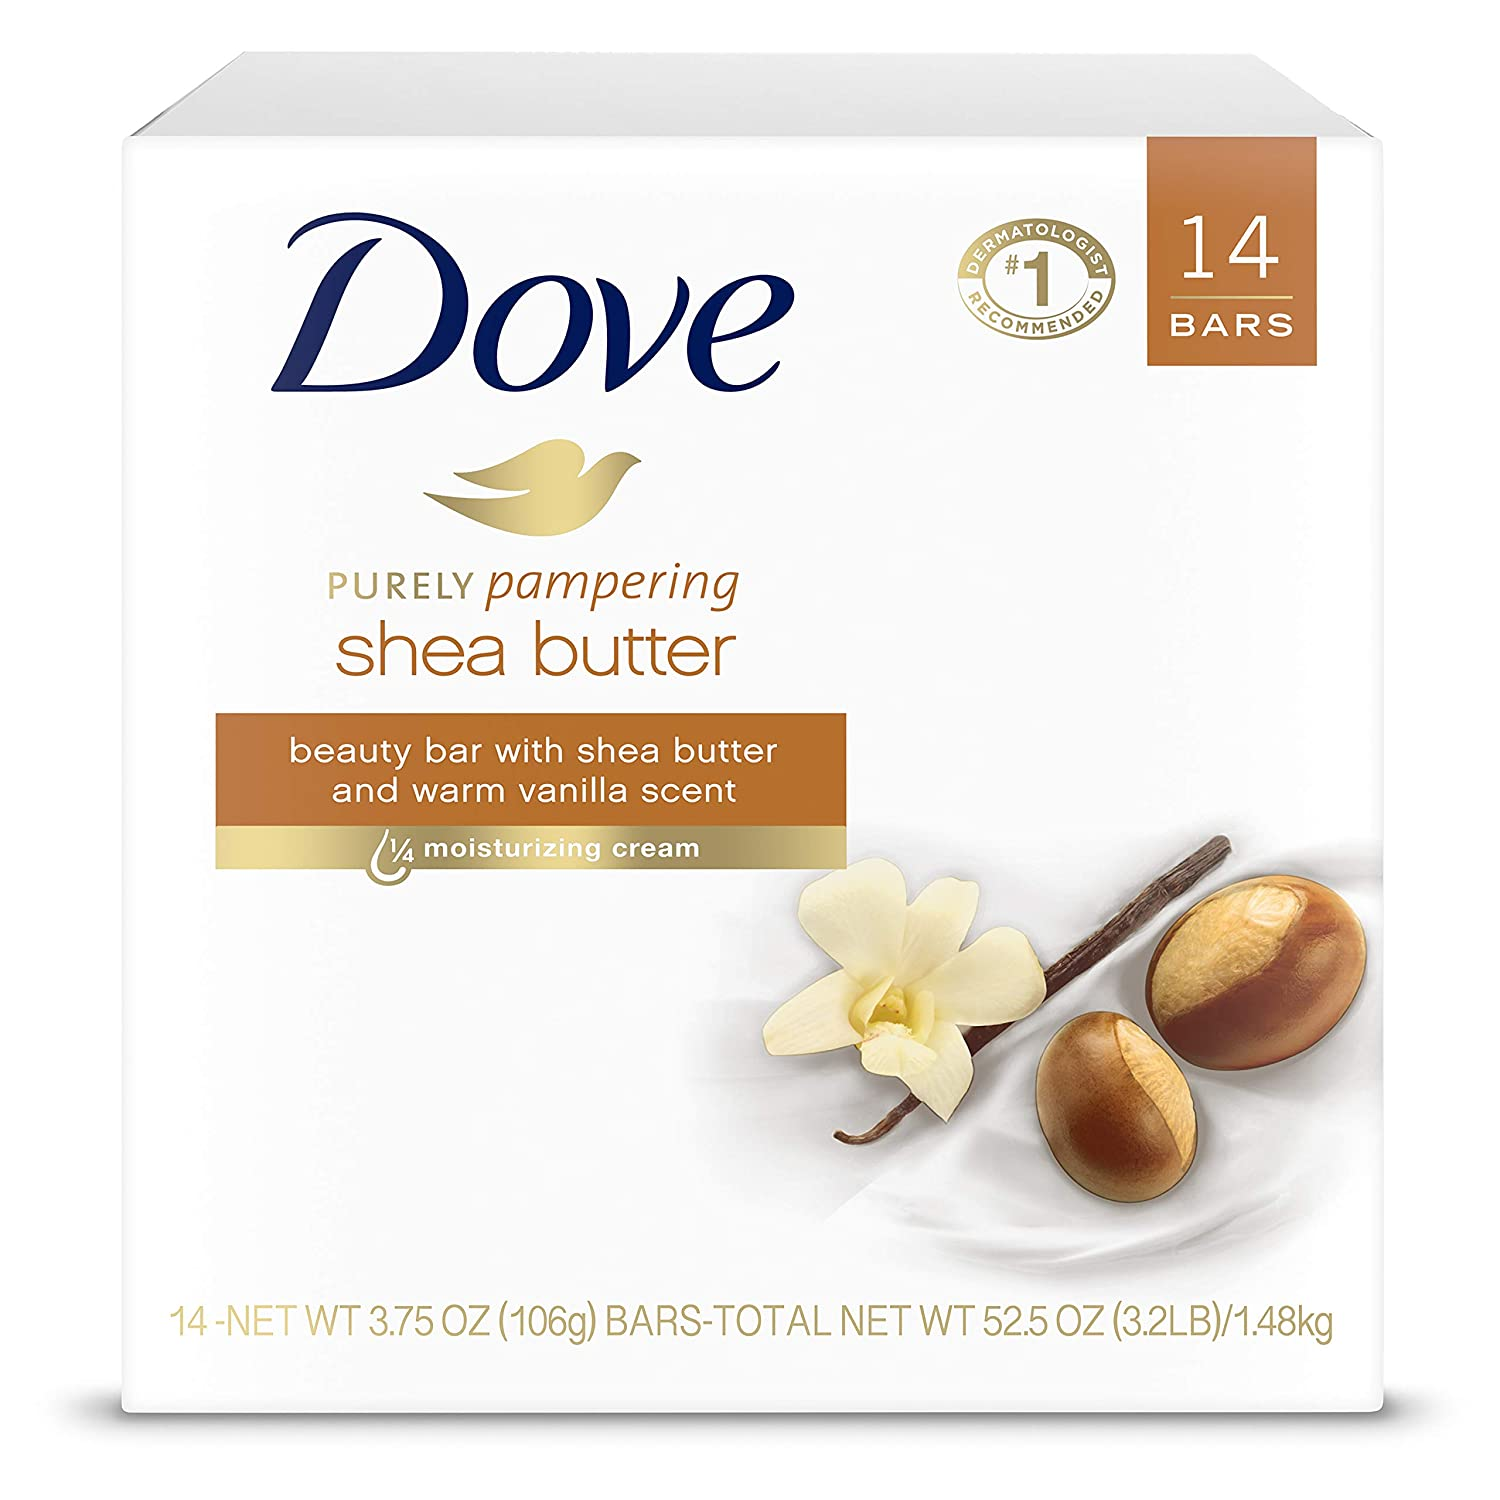 Dove Purely Pampering Beauty Bar for Softer Skin Shea Butter More Moisturizing Than Bar Soap 3.75 oz 14 Bars